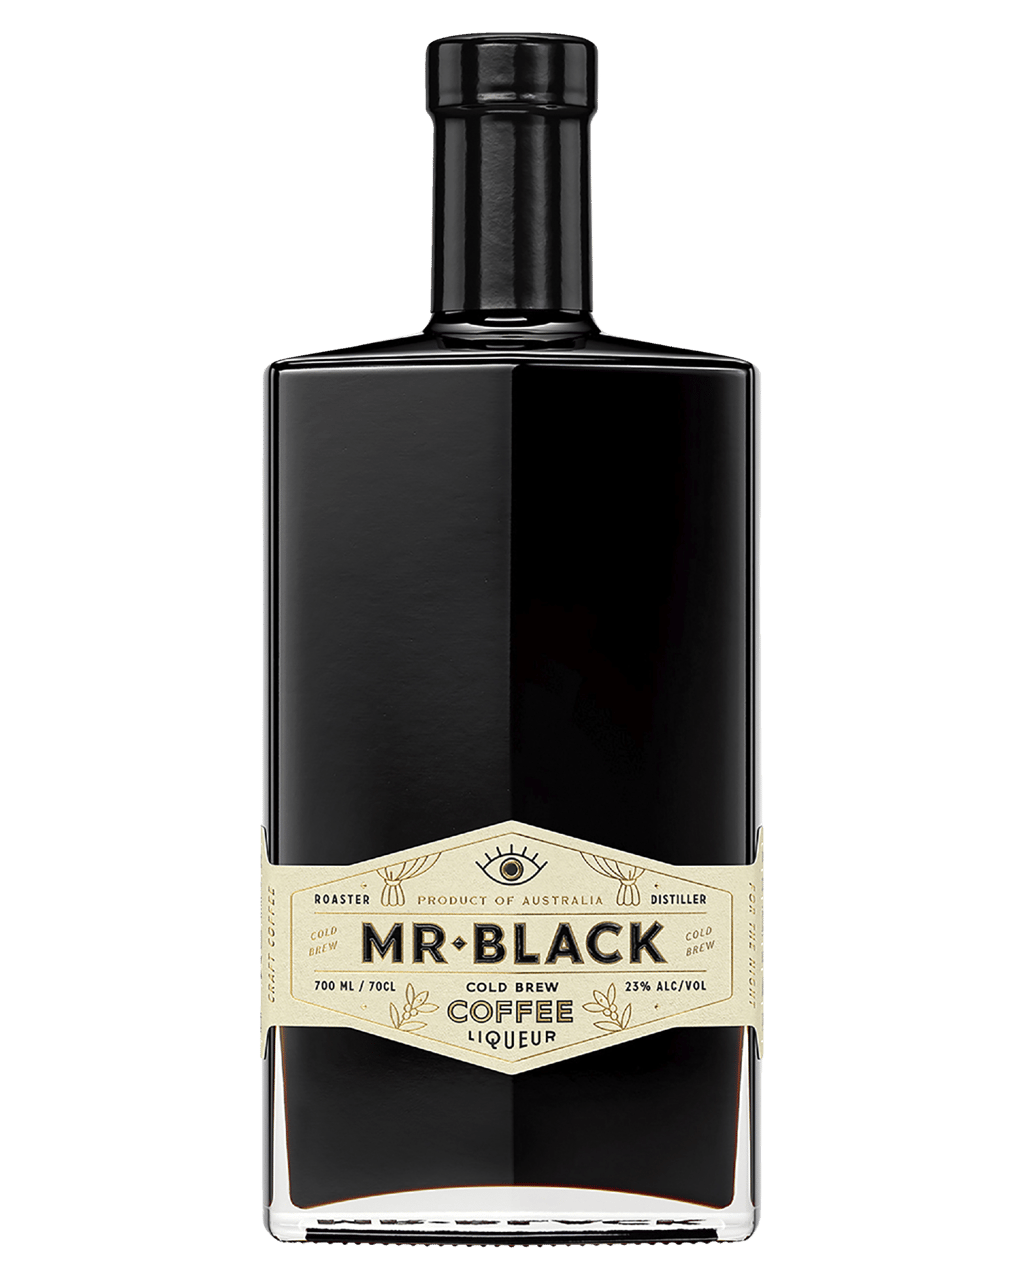 Mr Black Cold Brew Coffee Liqueur 700mL  85b16cdfbc